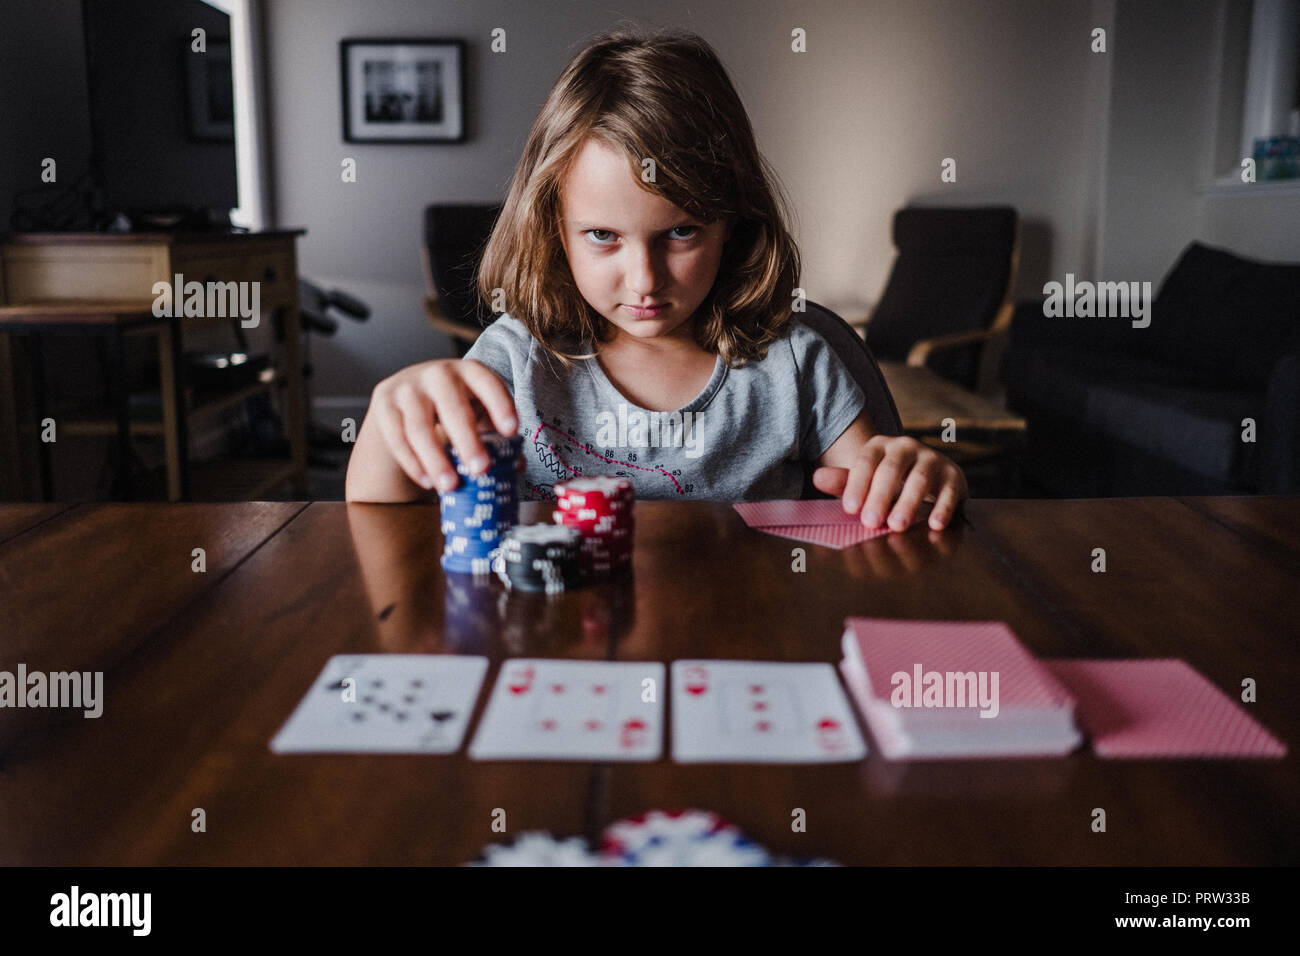 Girl with stack of gambling chips playing cards at table, portrait - Stock Image